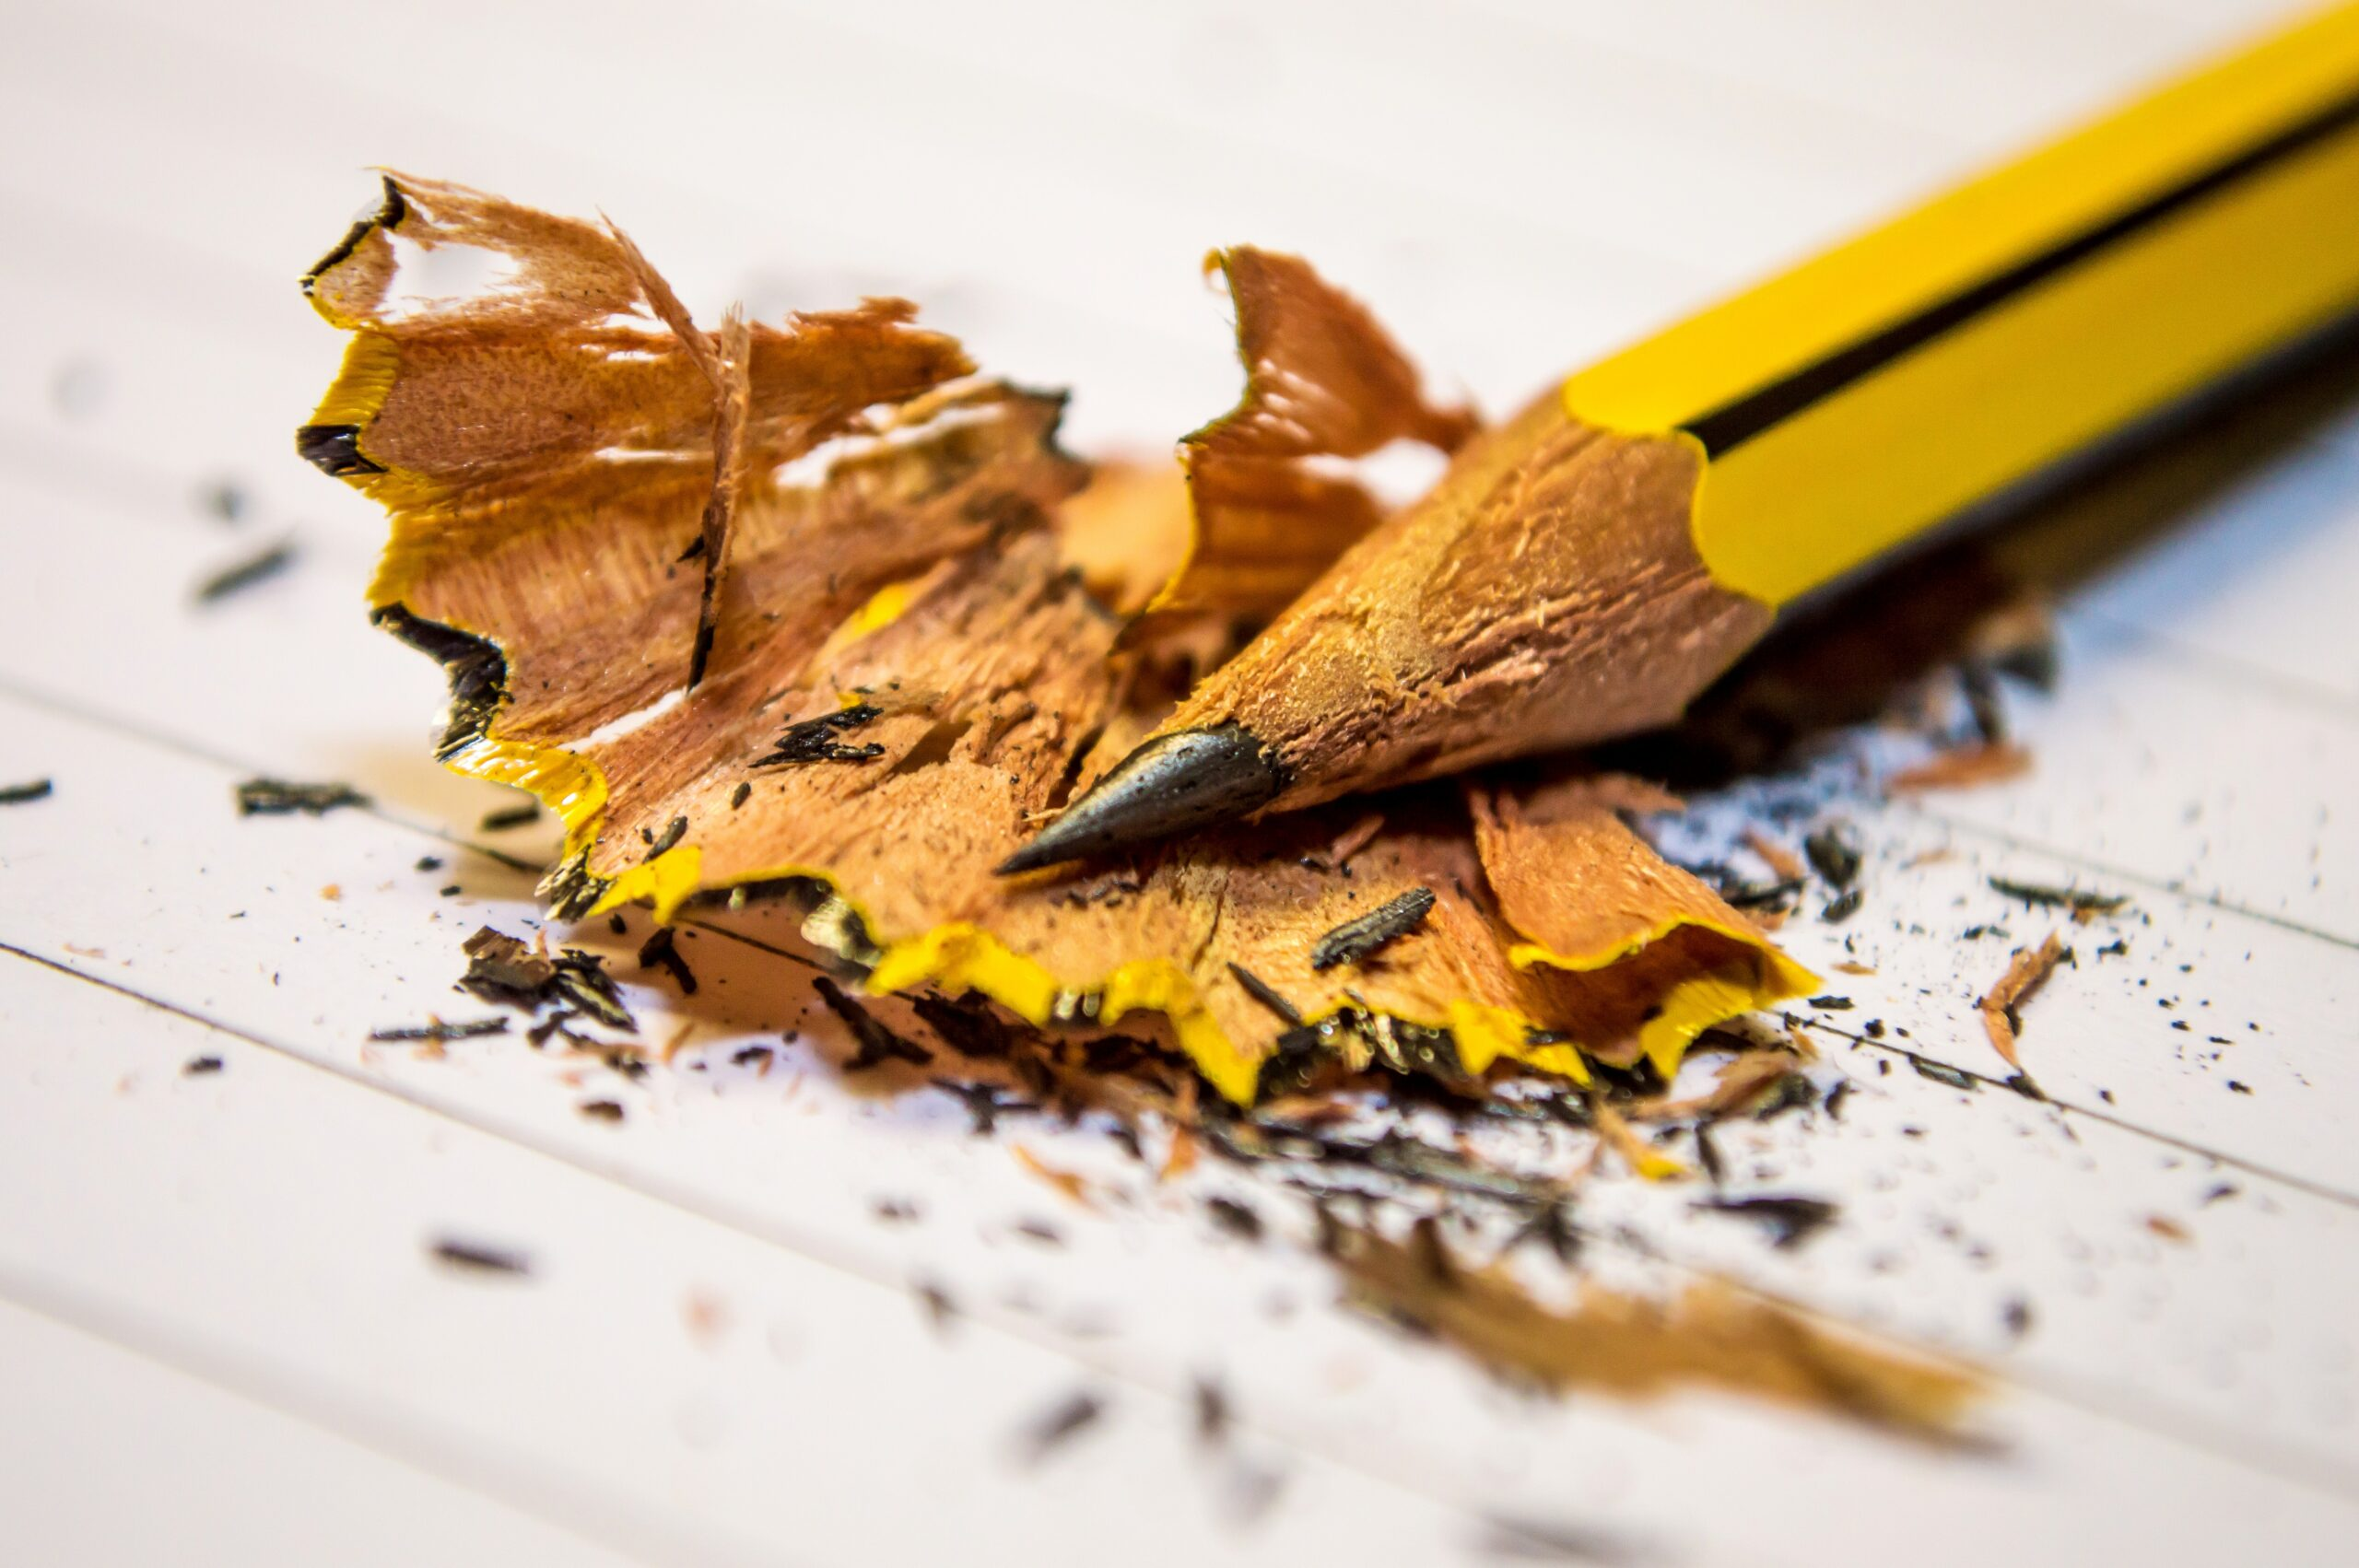 a sharpened pencil with pencil shavings